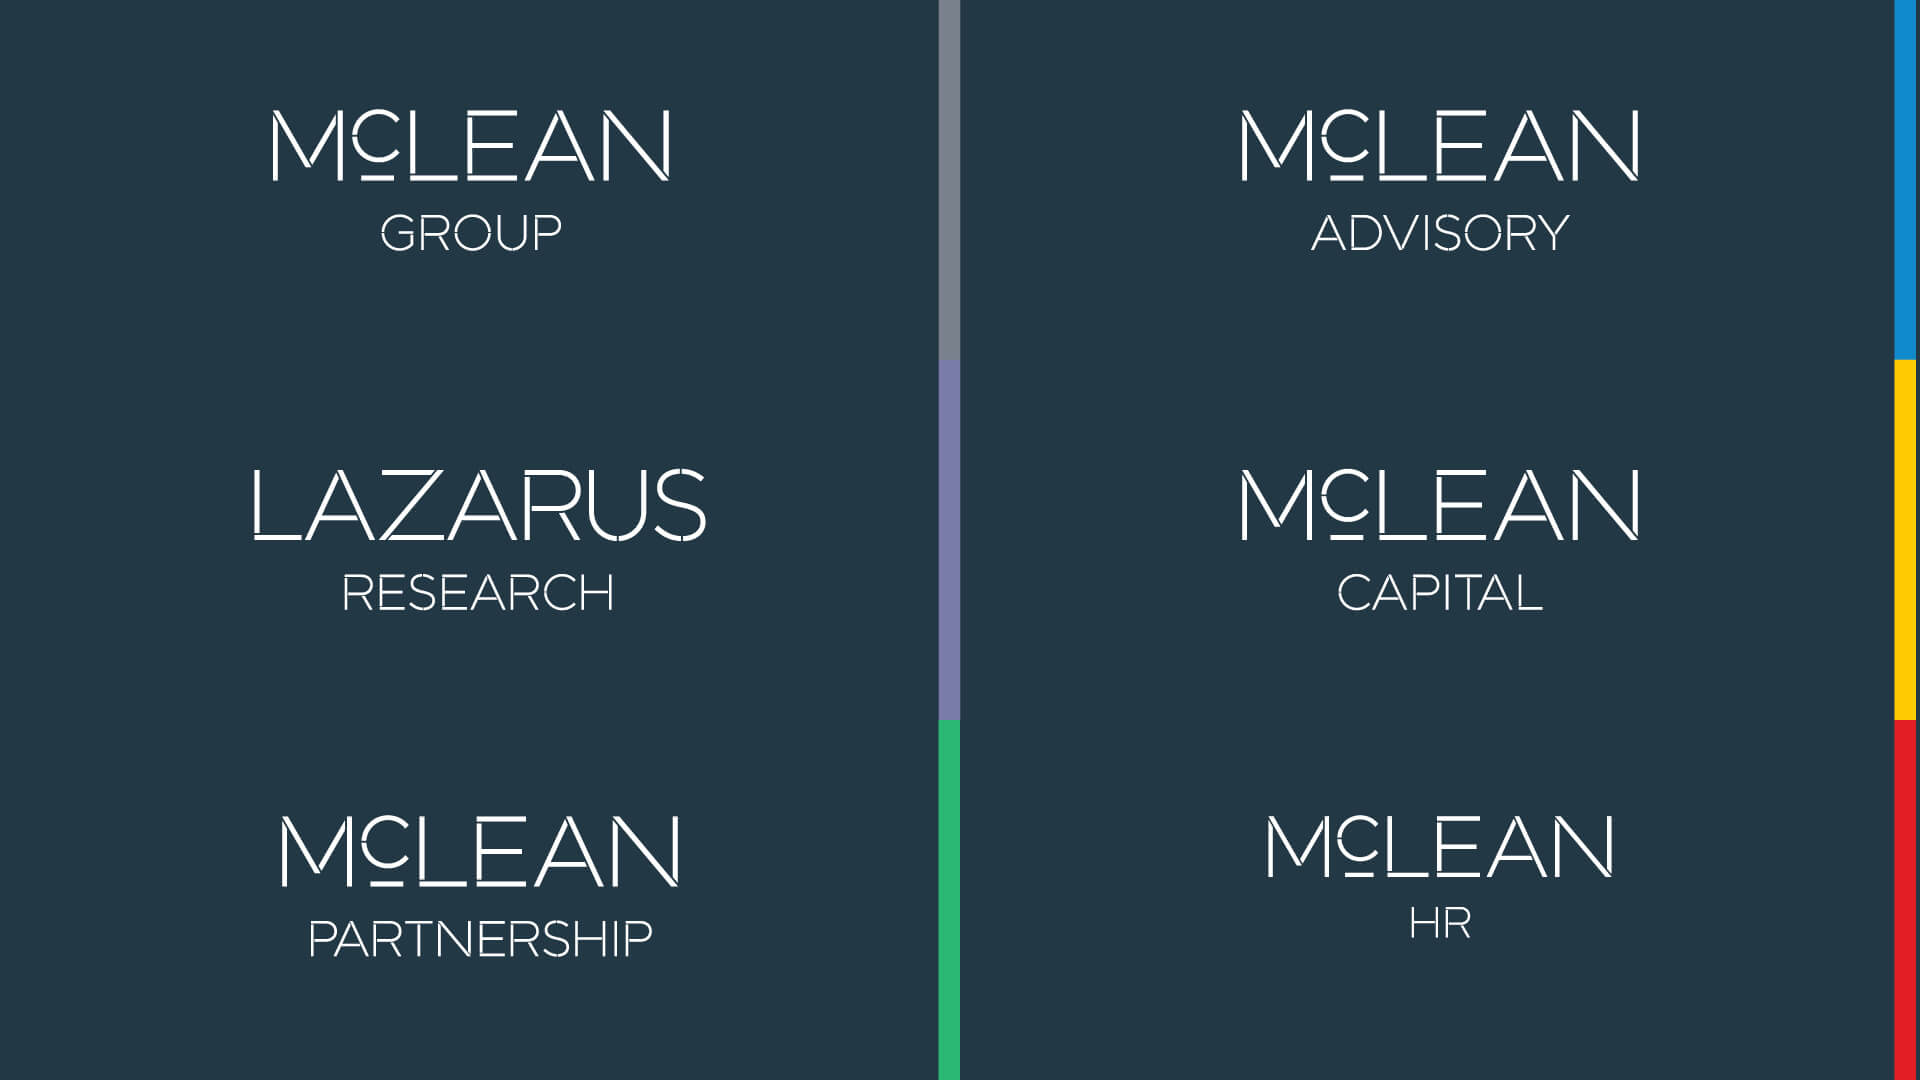 mclean group rebranding brand architecture brand strategy